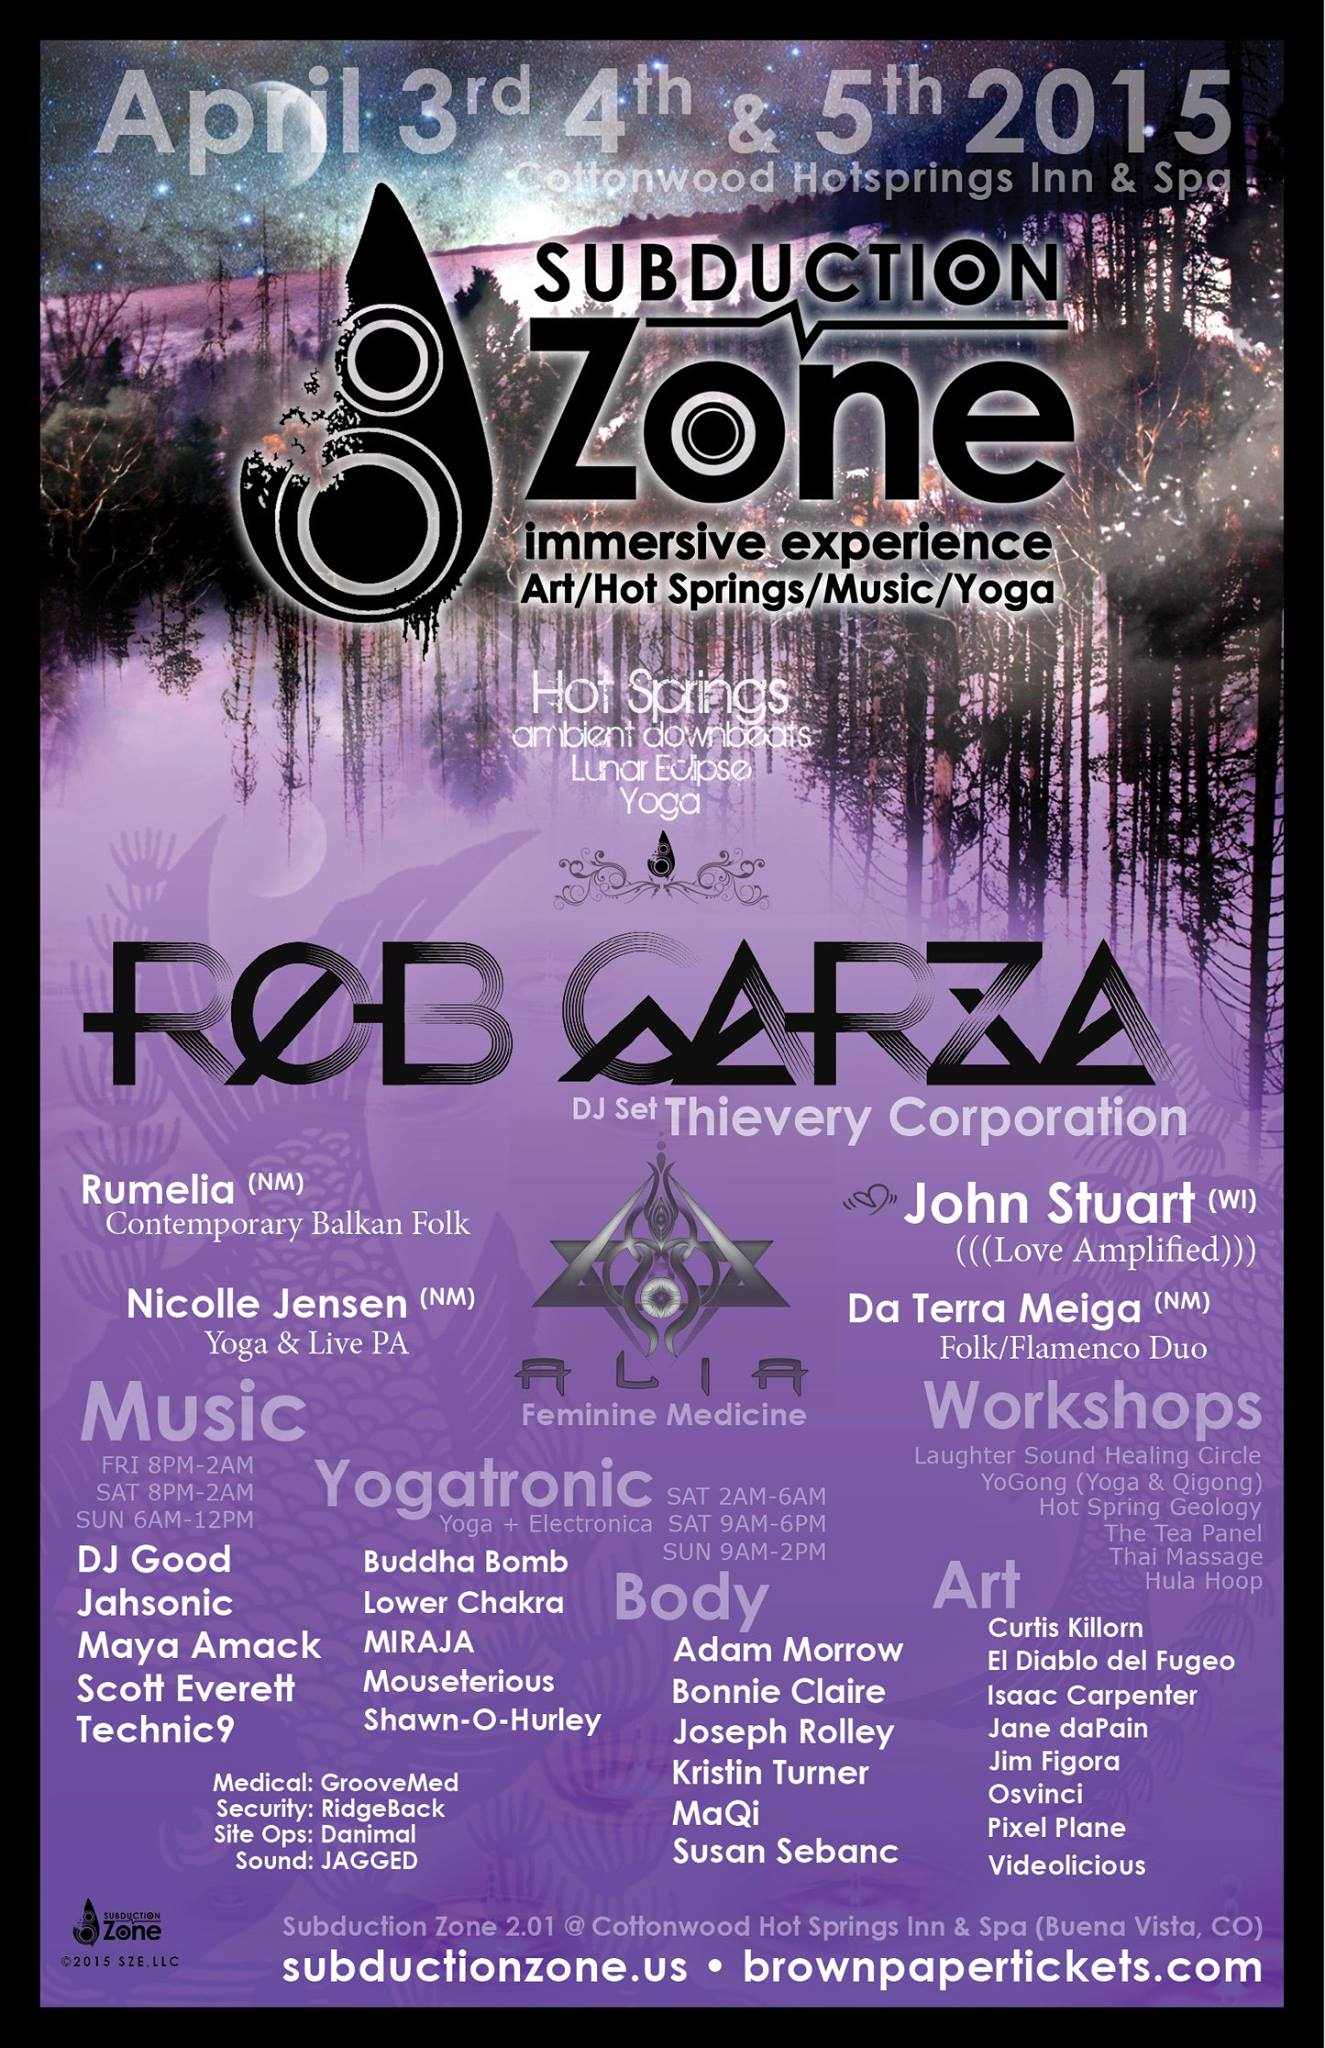 FAMILY MOONS ARTIST AT SUBDUCTION ZONE APRIL 3-5TH 2015